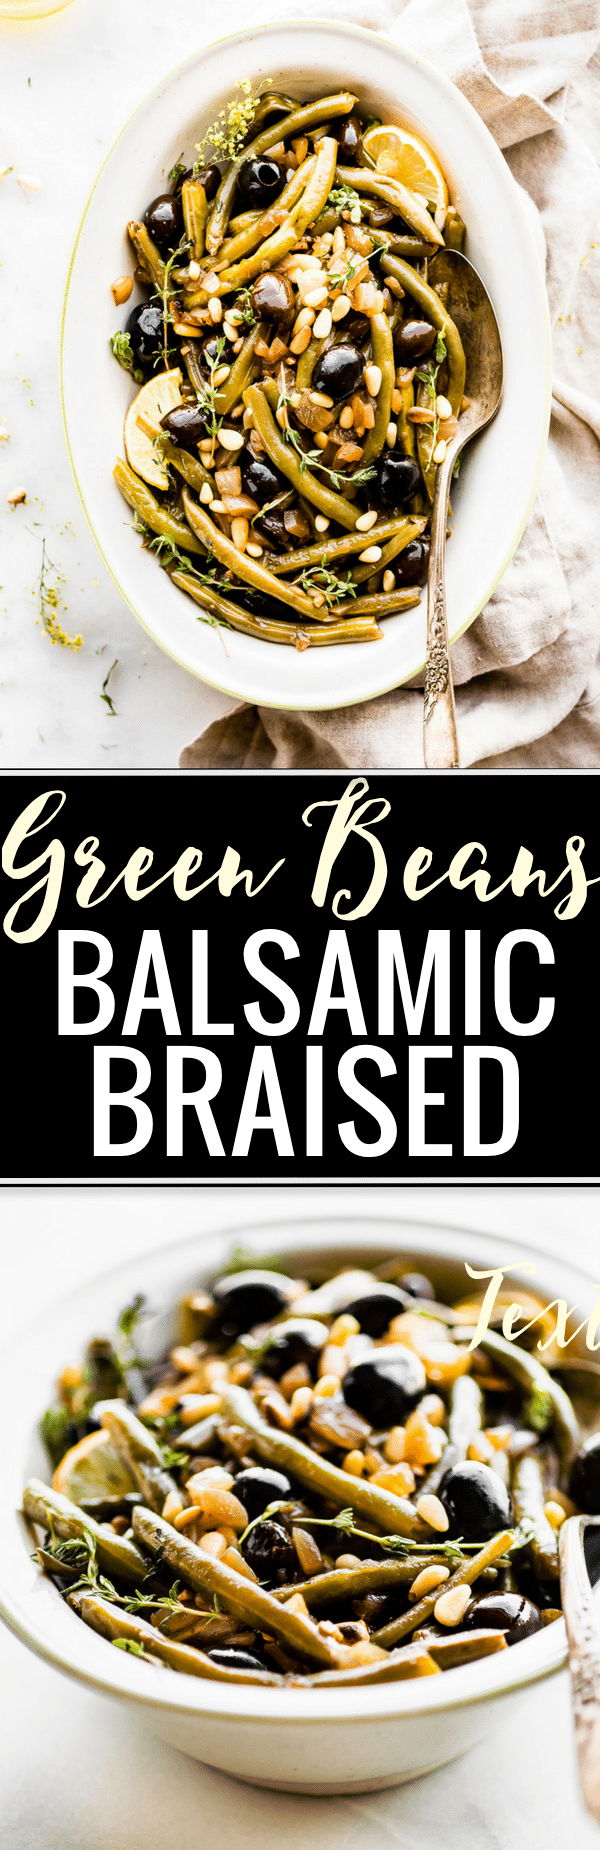 "Take your vegetable side dish to the ""next level"" with these easy BALSAMIC OLIVE-OIL BRAISED GREEN BEANS! Made with fresh green beans, thyme, balsamic vinegar, olive-oil, black olives, onion & toasted pine nuts. Paleo, vegan friendly. Delicious! www.cottercrunch.com"